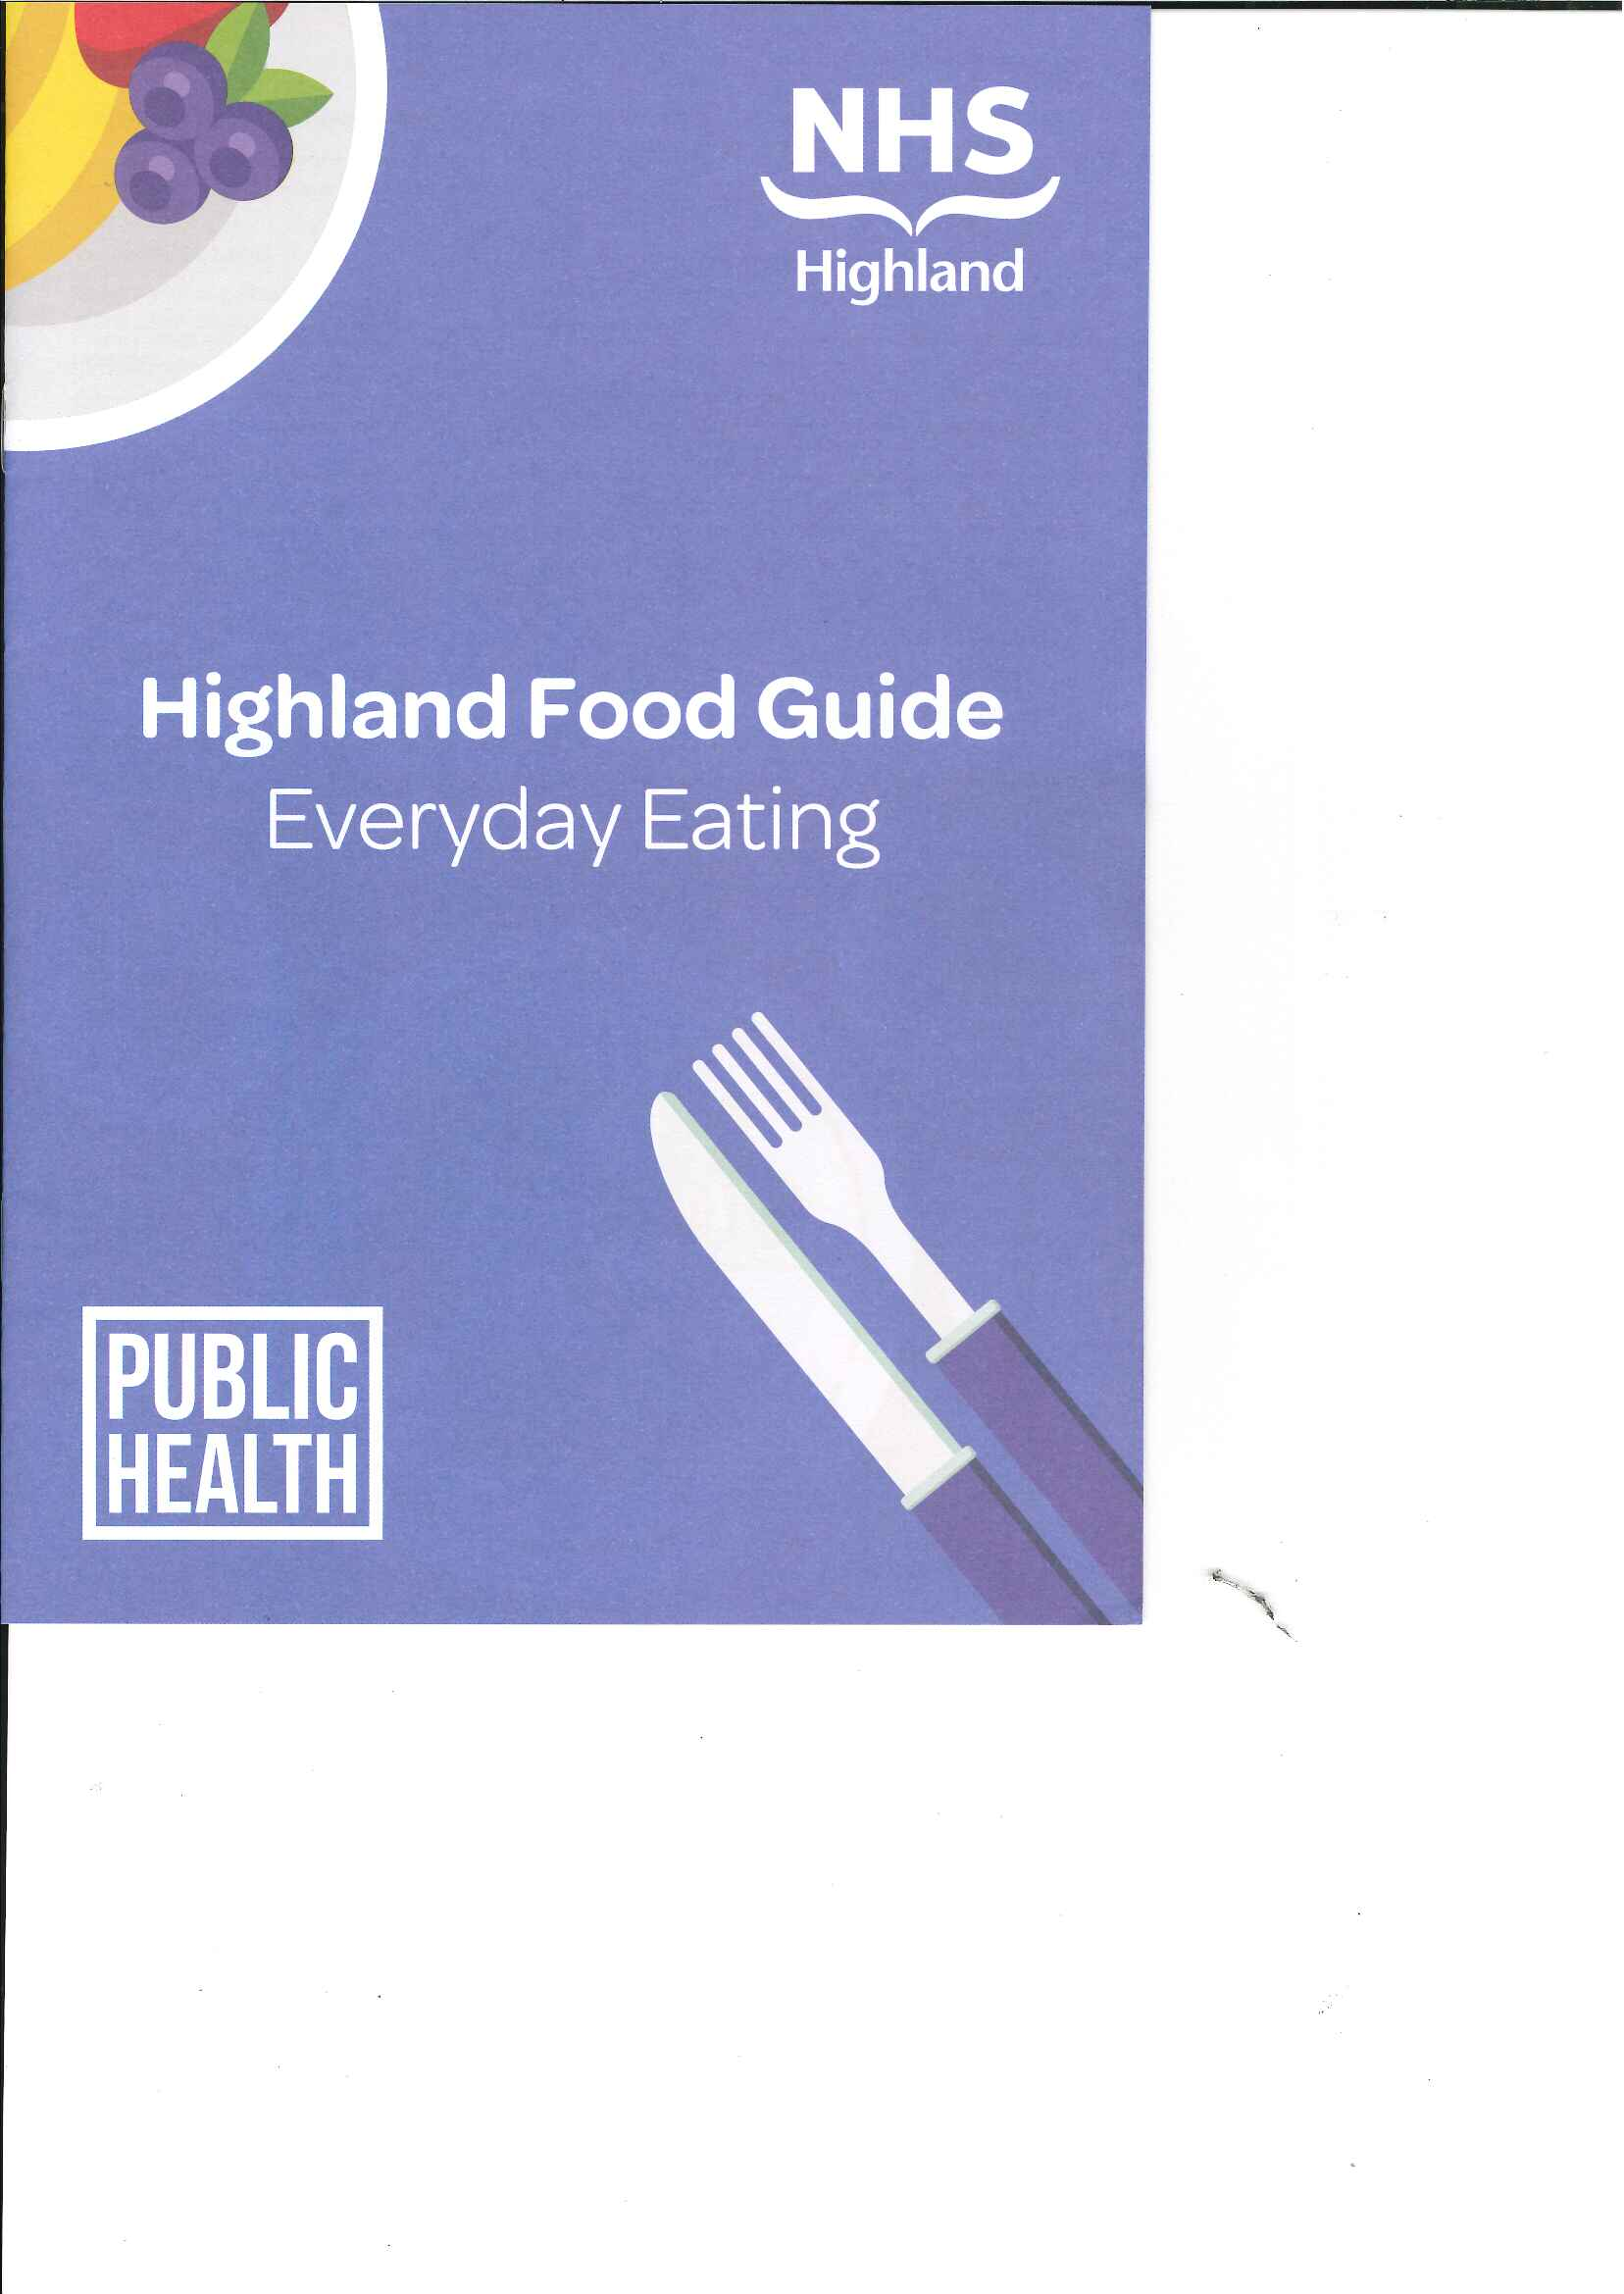 Large image for Highland Food Guide Everyday Eating